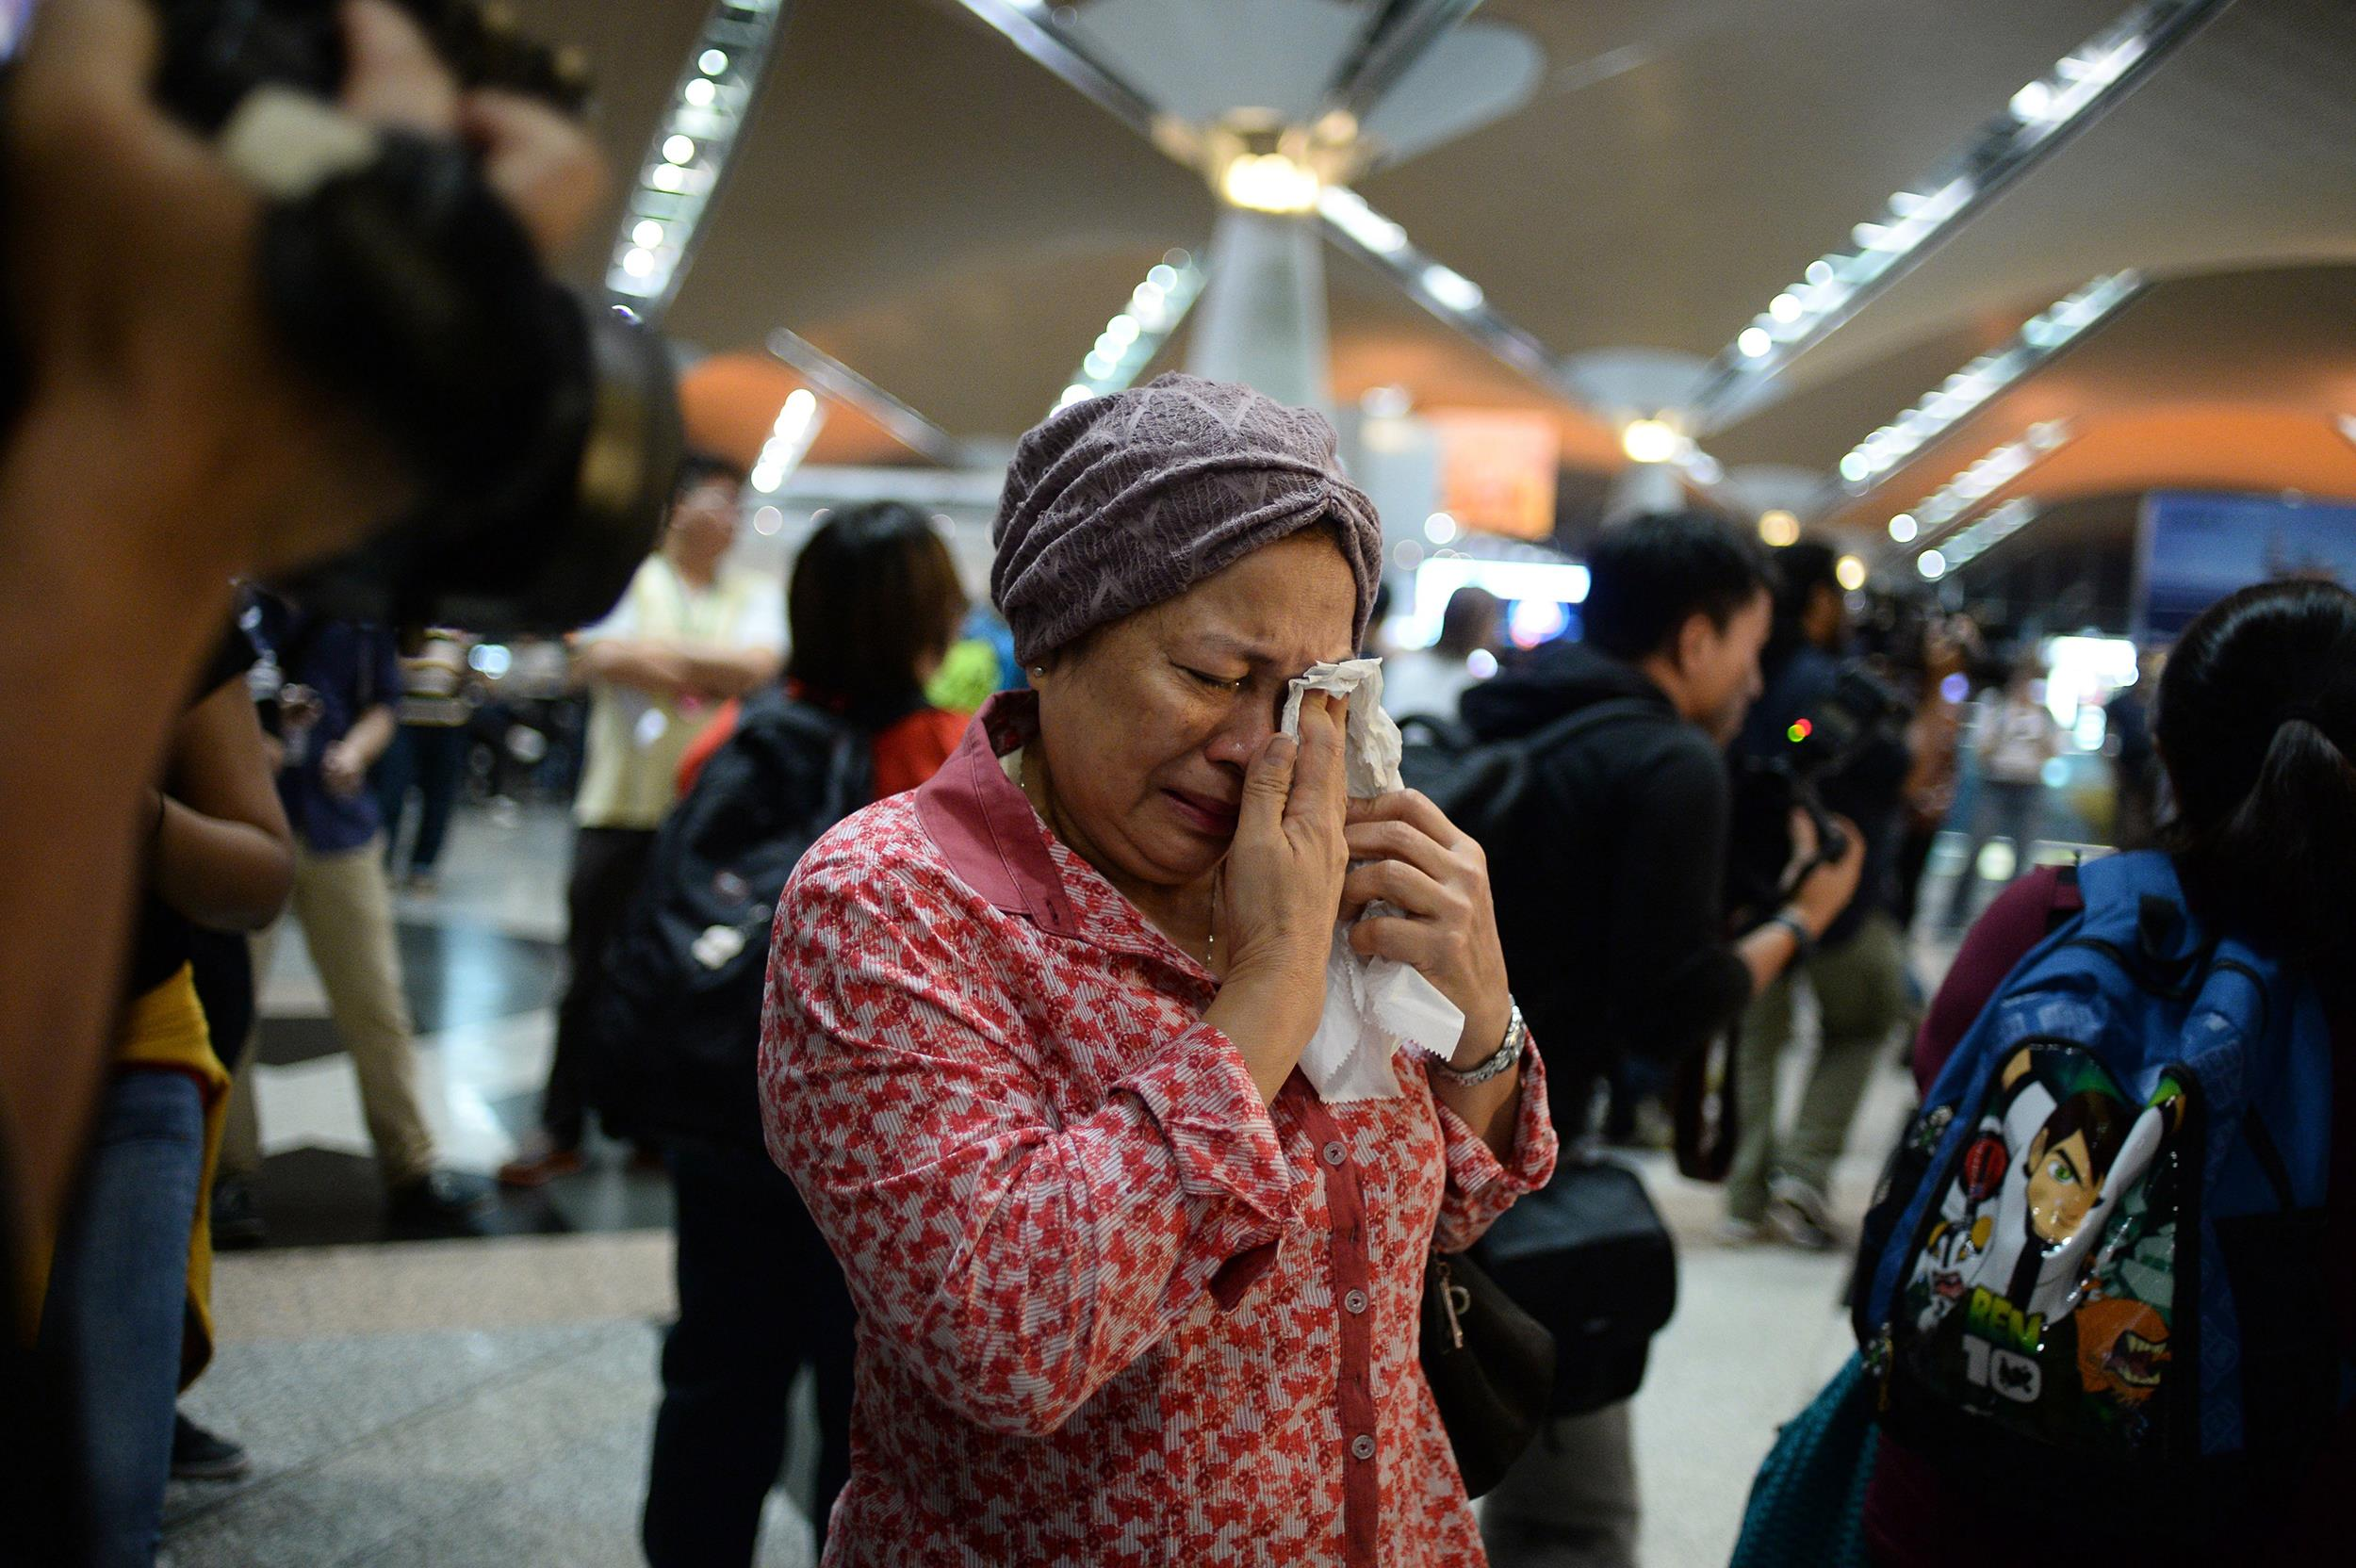 Image: A woman reacts to news regarding a Malaysia Airlines plane that crashed in eastern Ukraine at Kuala Lumpur International Airport in Sepang, Malaysia, on July 18.